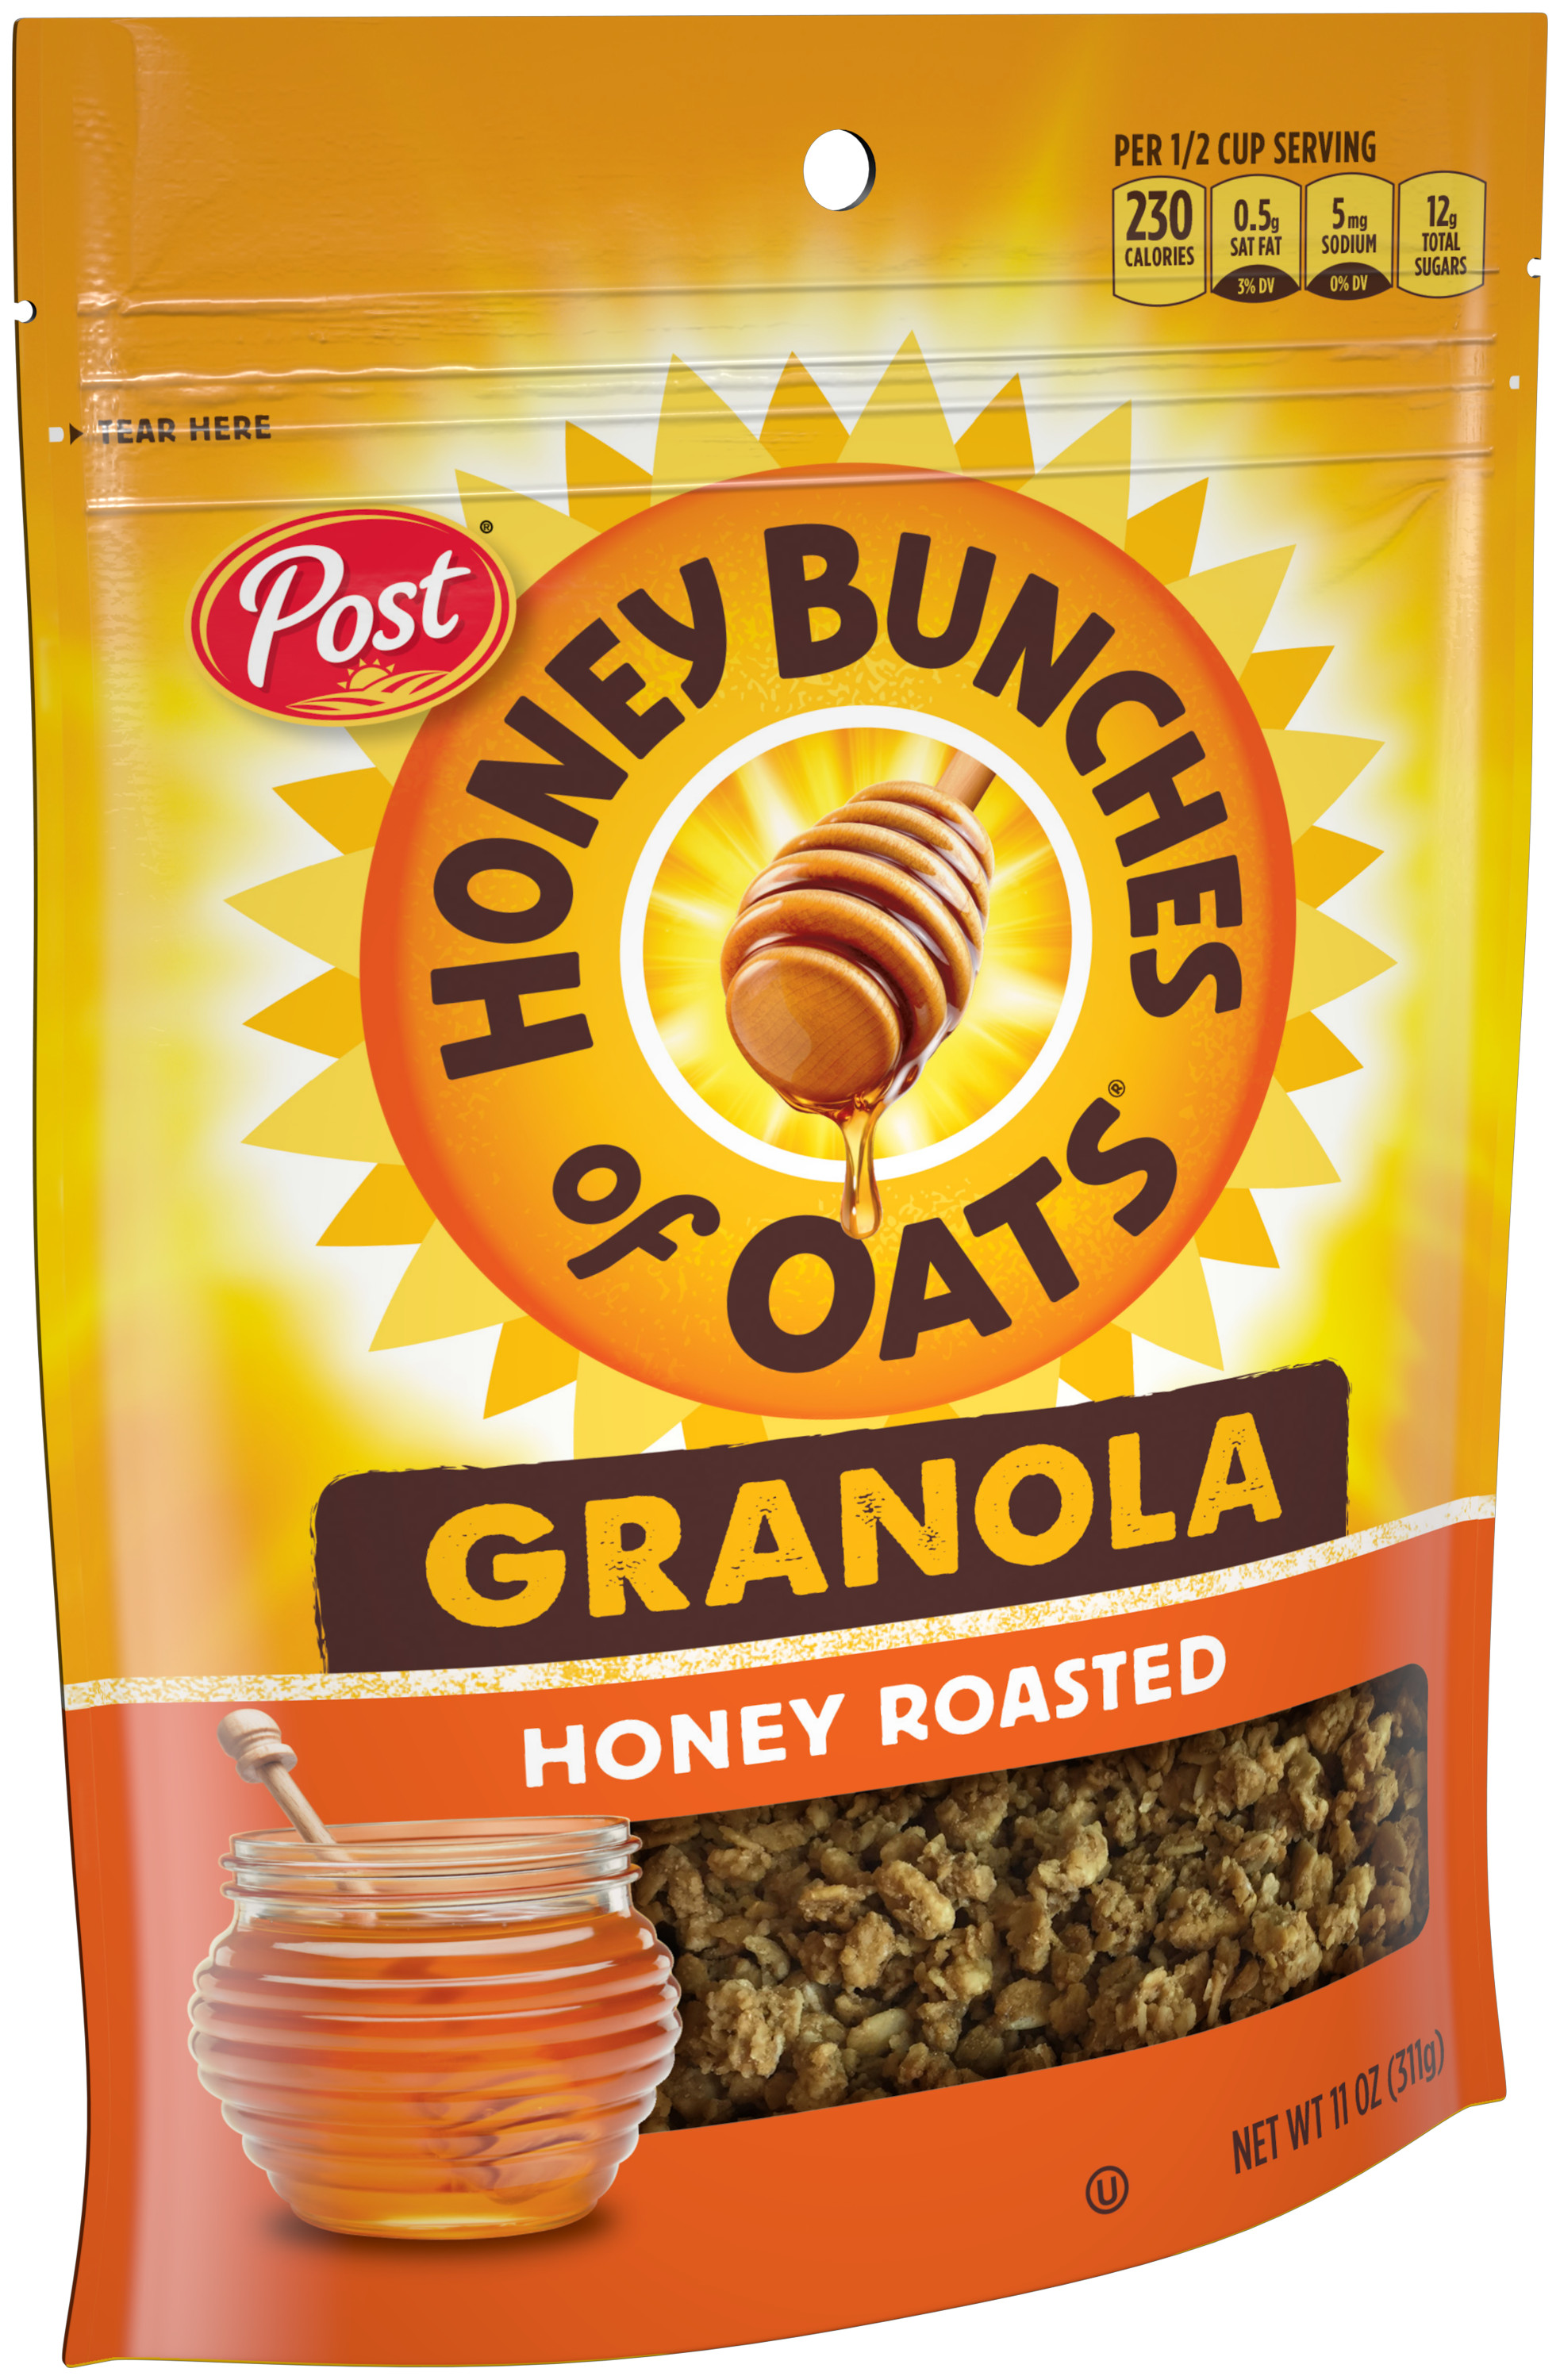 Honey bunches of oats clipart picture free Honey Bunches of Oats® | Post Consumer Brands picture free